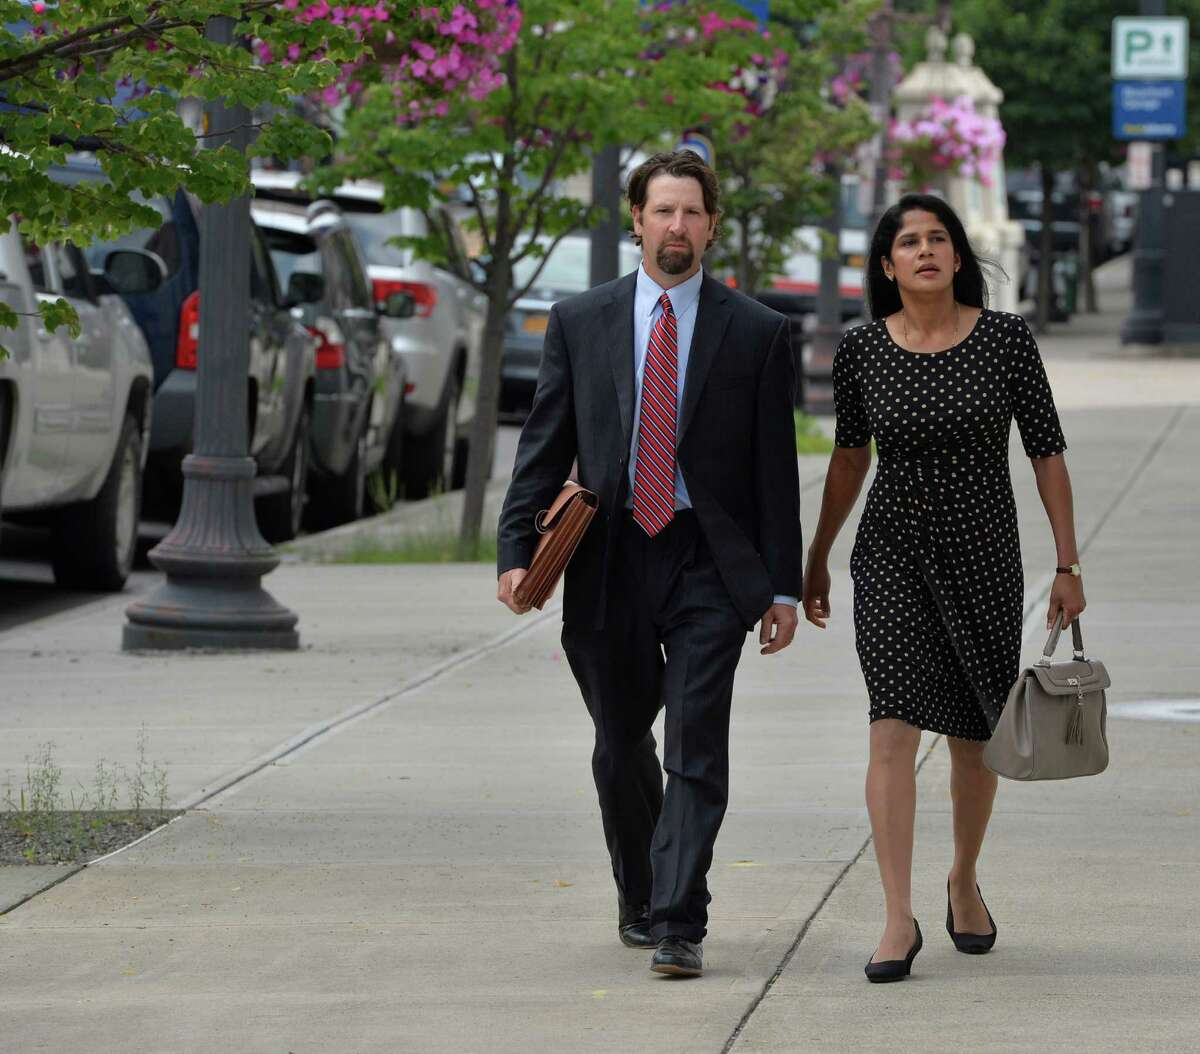 Annie George arrives for her sentencing at the Federal Courthouse with her attorney Mark Sacco July 9, 2013 in Albany, N.Y. (Skip Dickstein/Times Union)